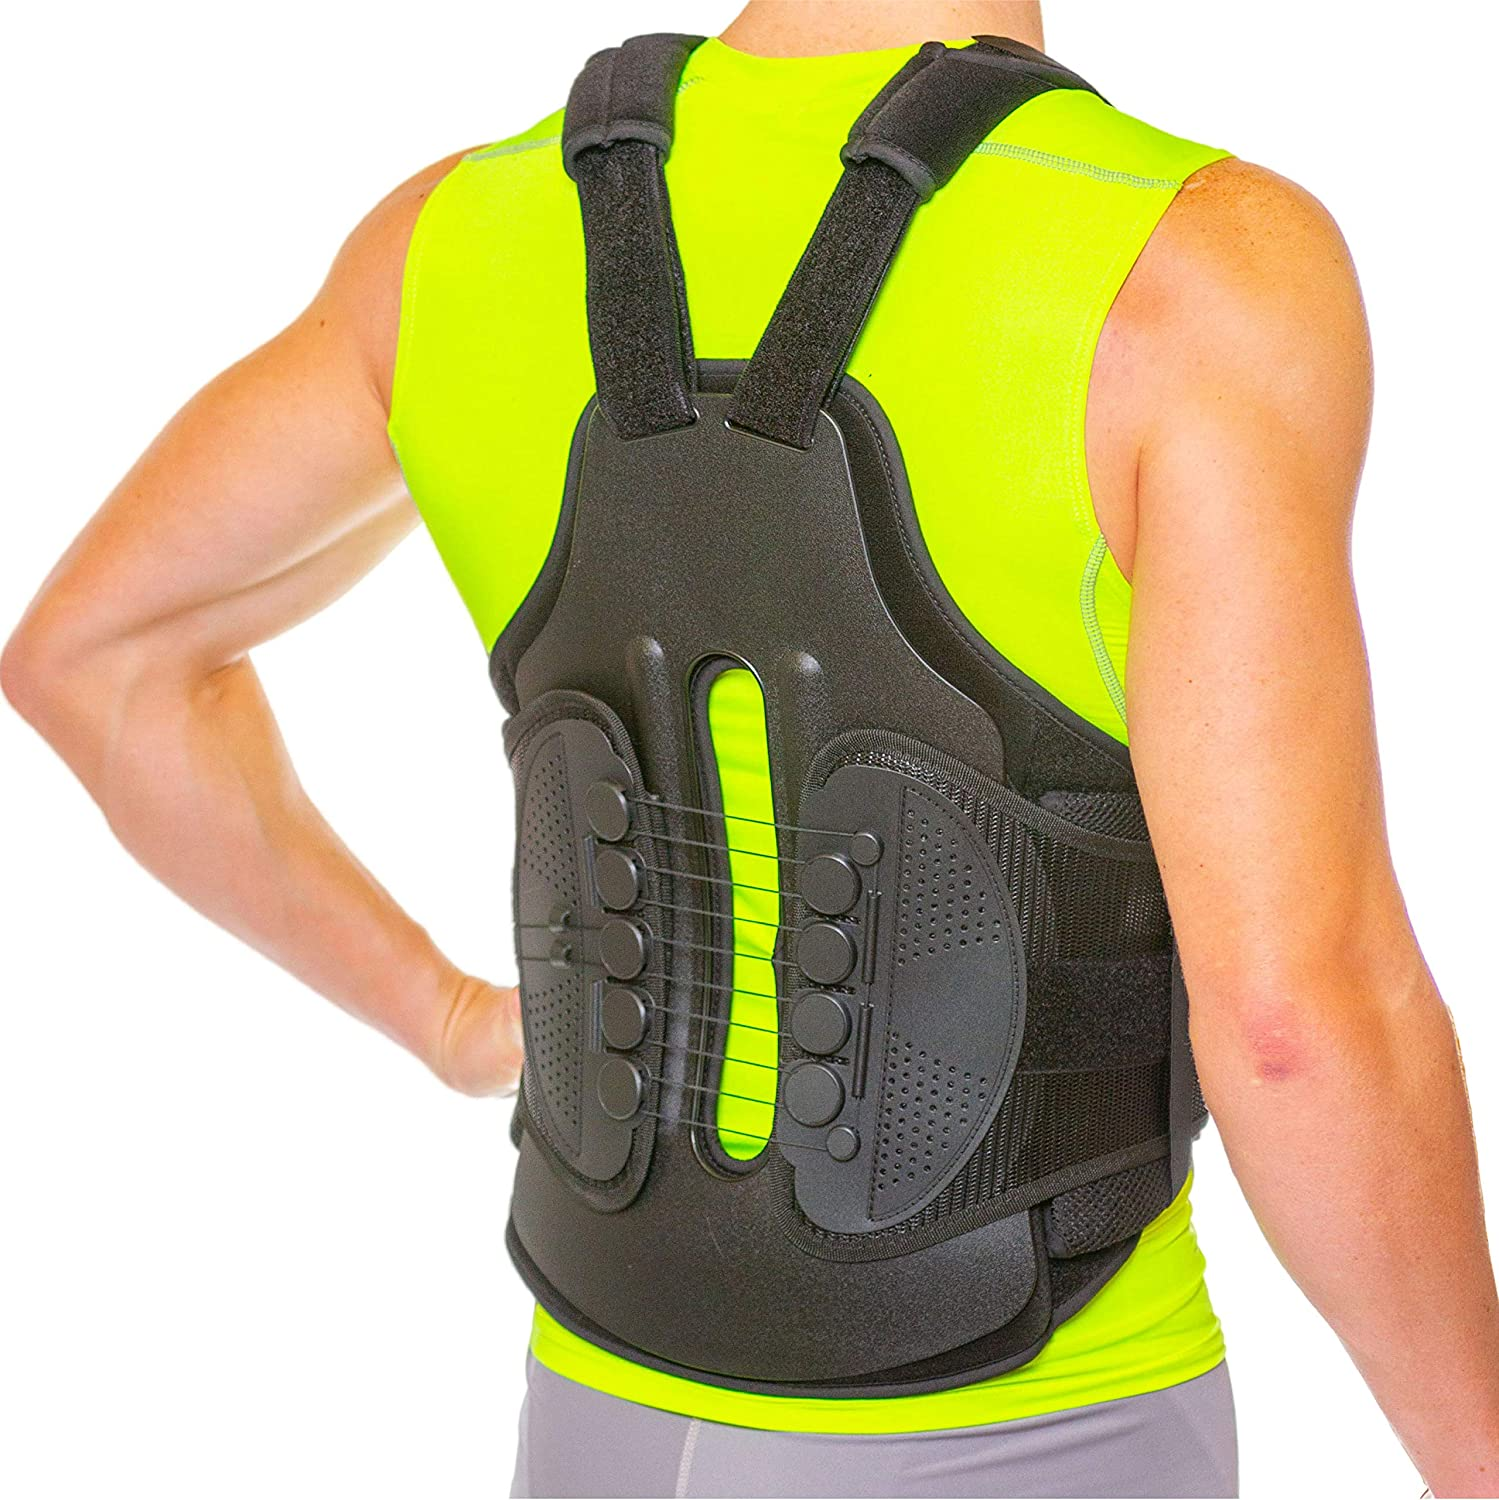 TLSO Thoracic Full Limited Special Price Back Brace Osteoporosis Co Treat - Memphis Mall Kyphosis